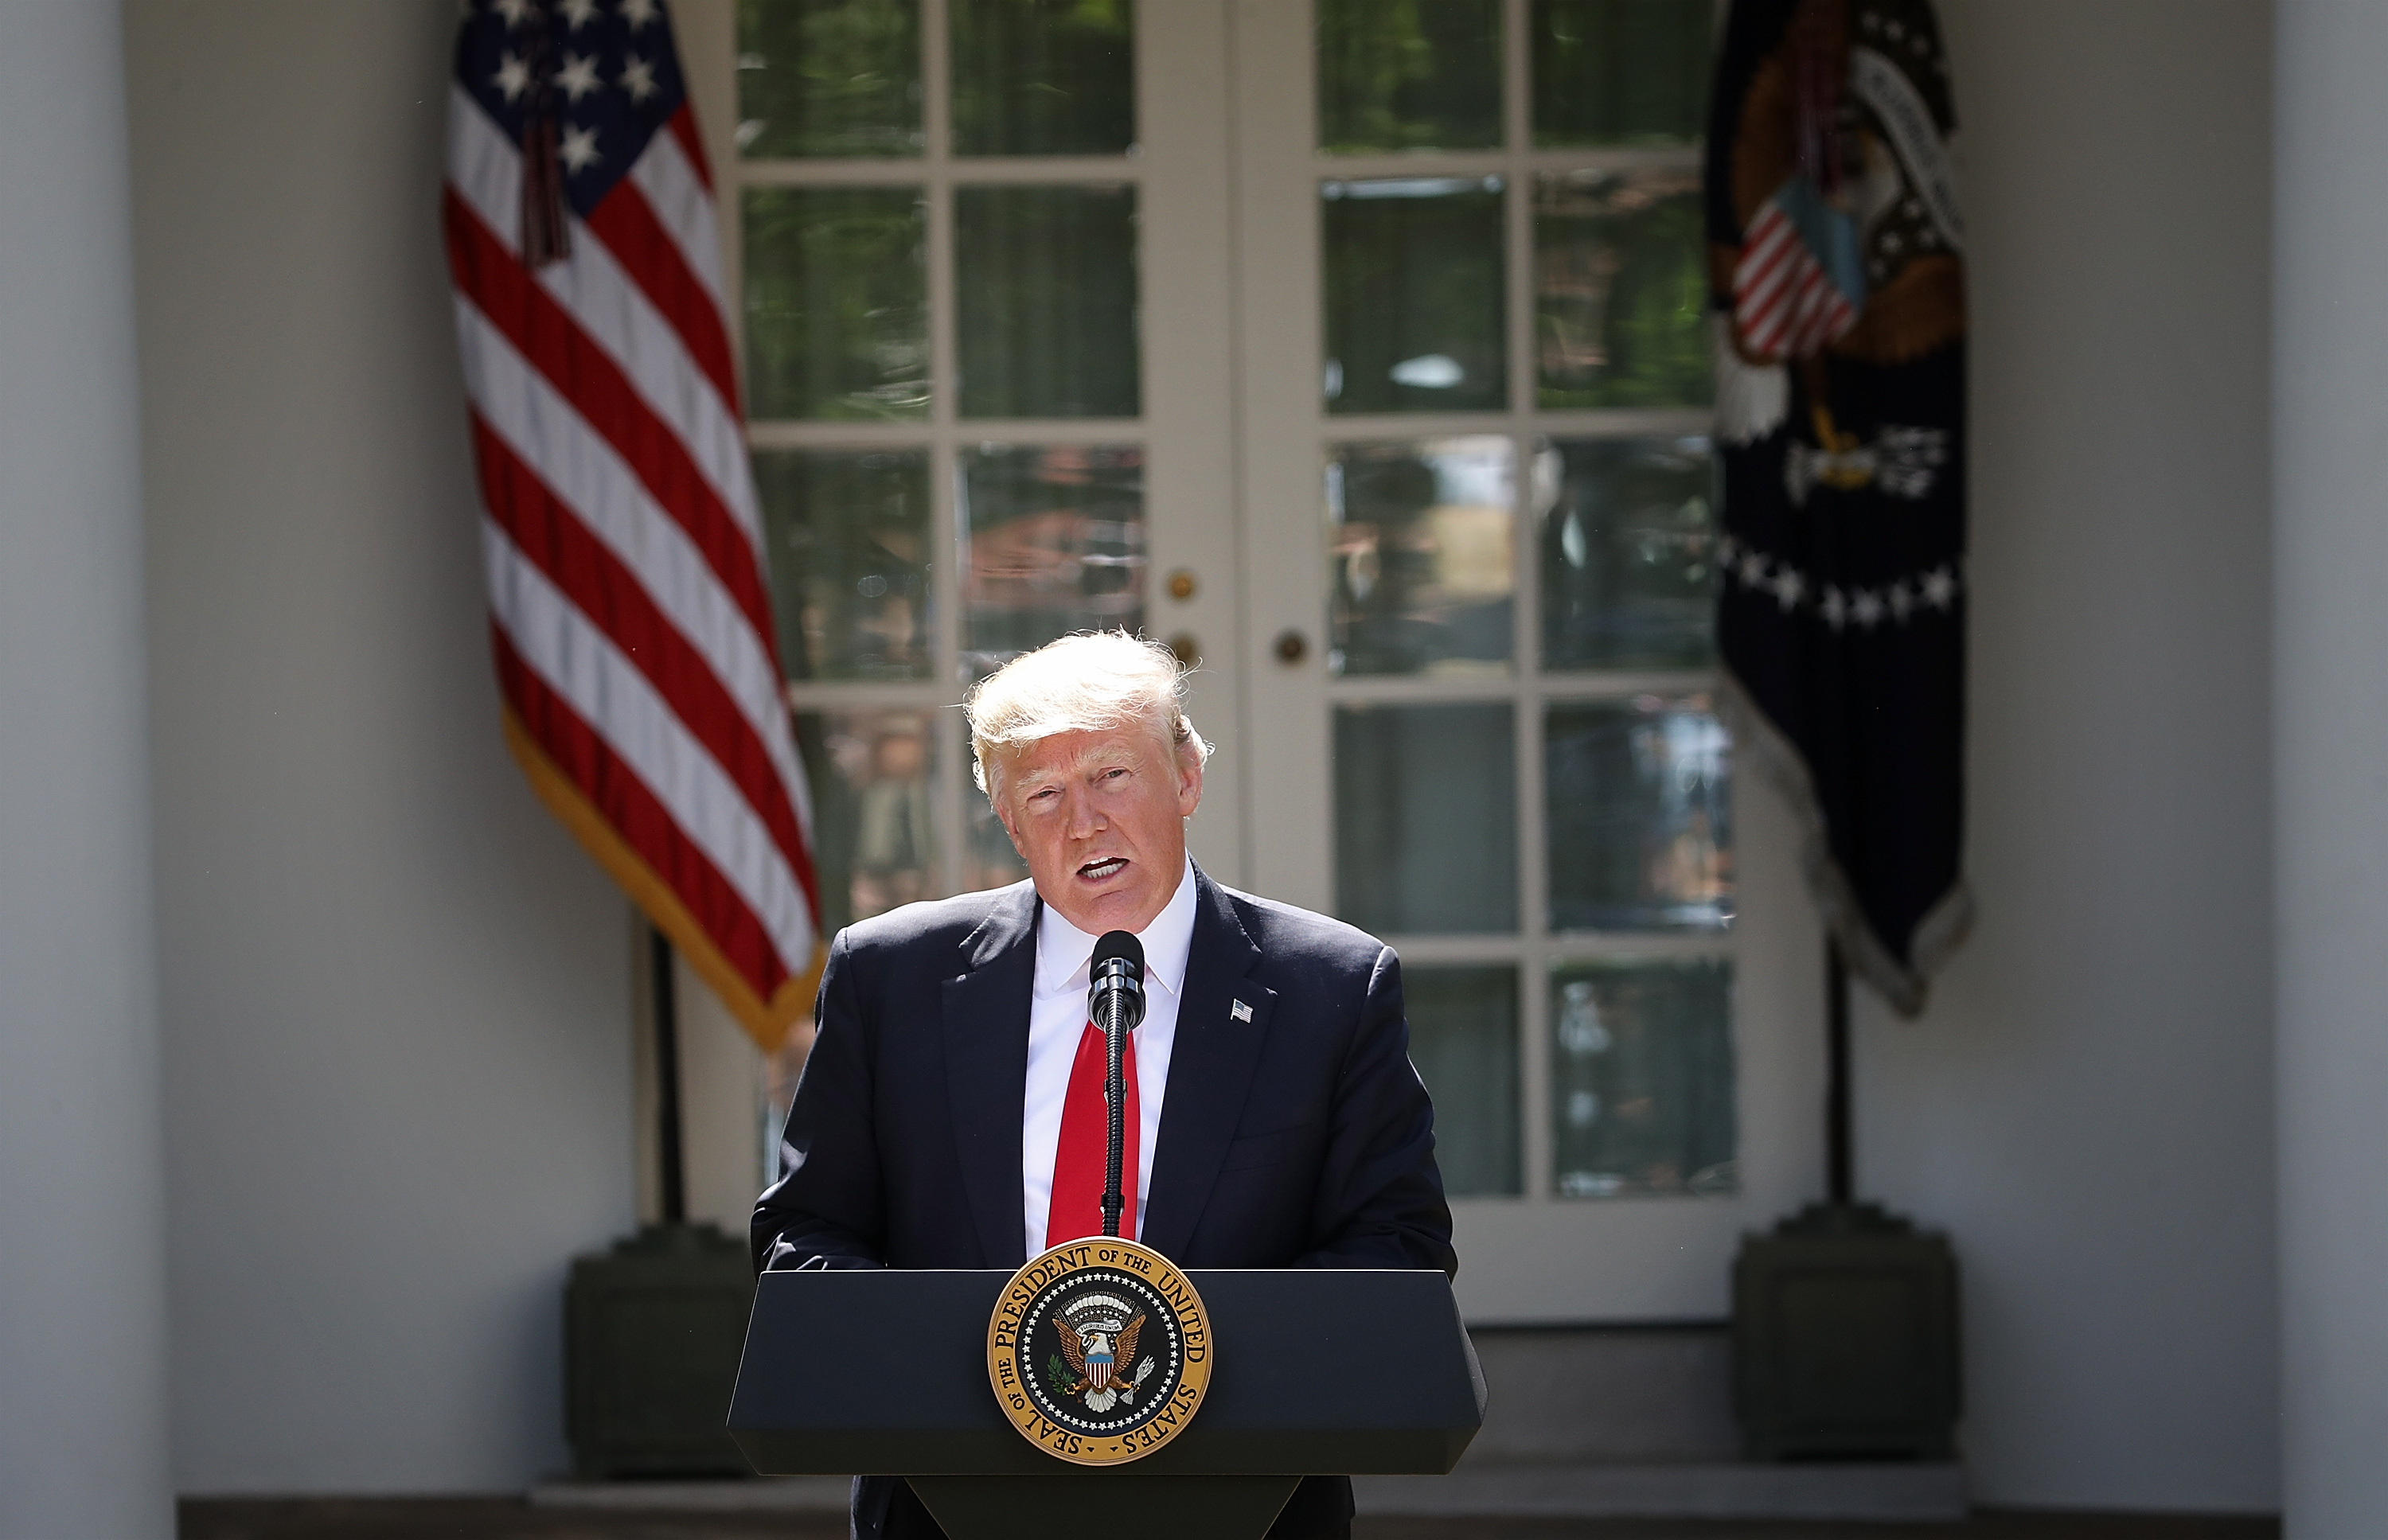 President Donald Trump announces his decision for the United States to pull out of the Paris climate agreement in the Rose Garden at the White House June 1, 2017 in Washington, D.C.